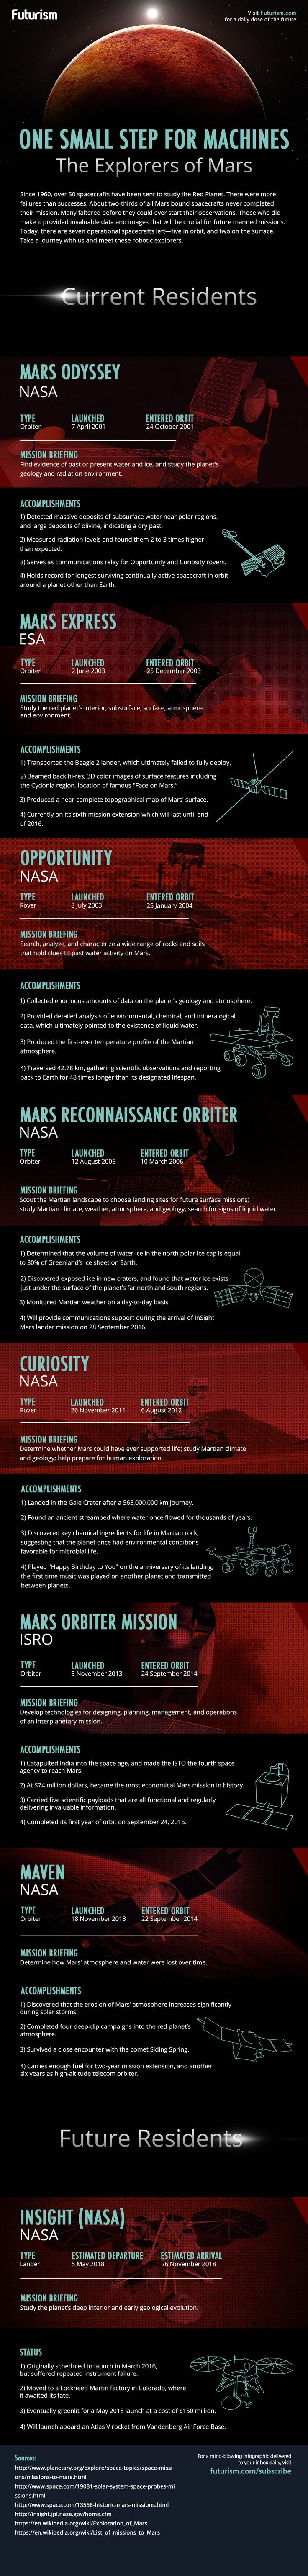 Over 50 spacecrafts have been sent to the red planet since 1960. Seven of them are still active, with another scheduled to join them in 2018. Meet the robotic orbiters and rovers that populate the red planet.